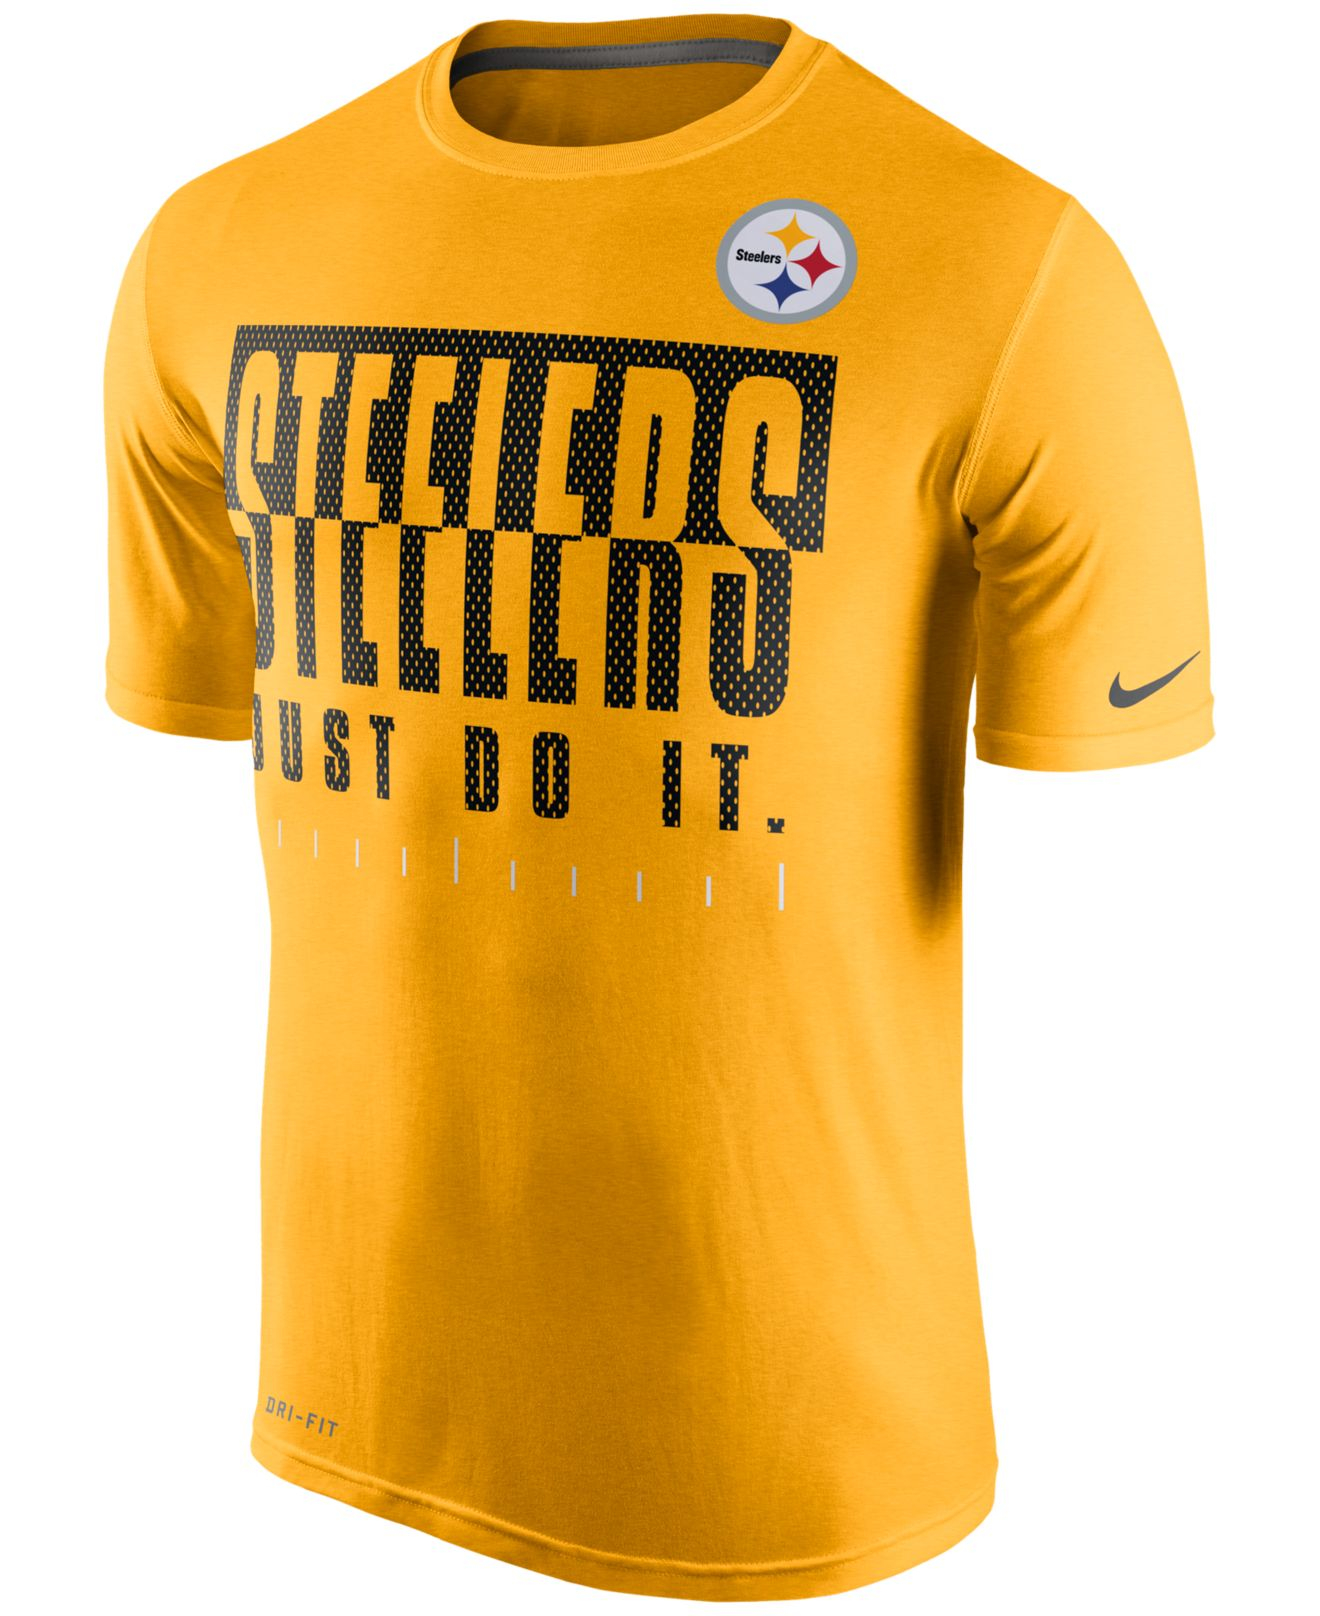 2f8d52d3 ... Nike Mens Pittsburgh Steelers Just Do It Legend T-shirt in Y . ...